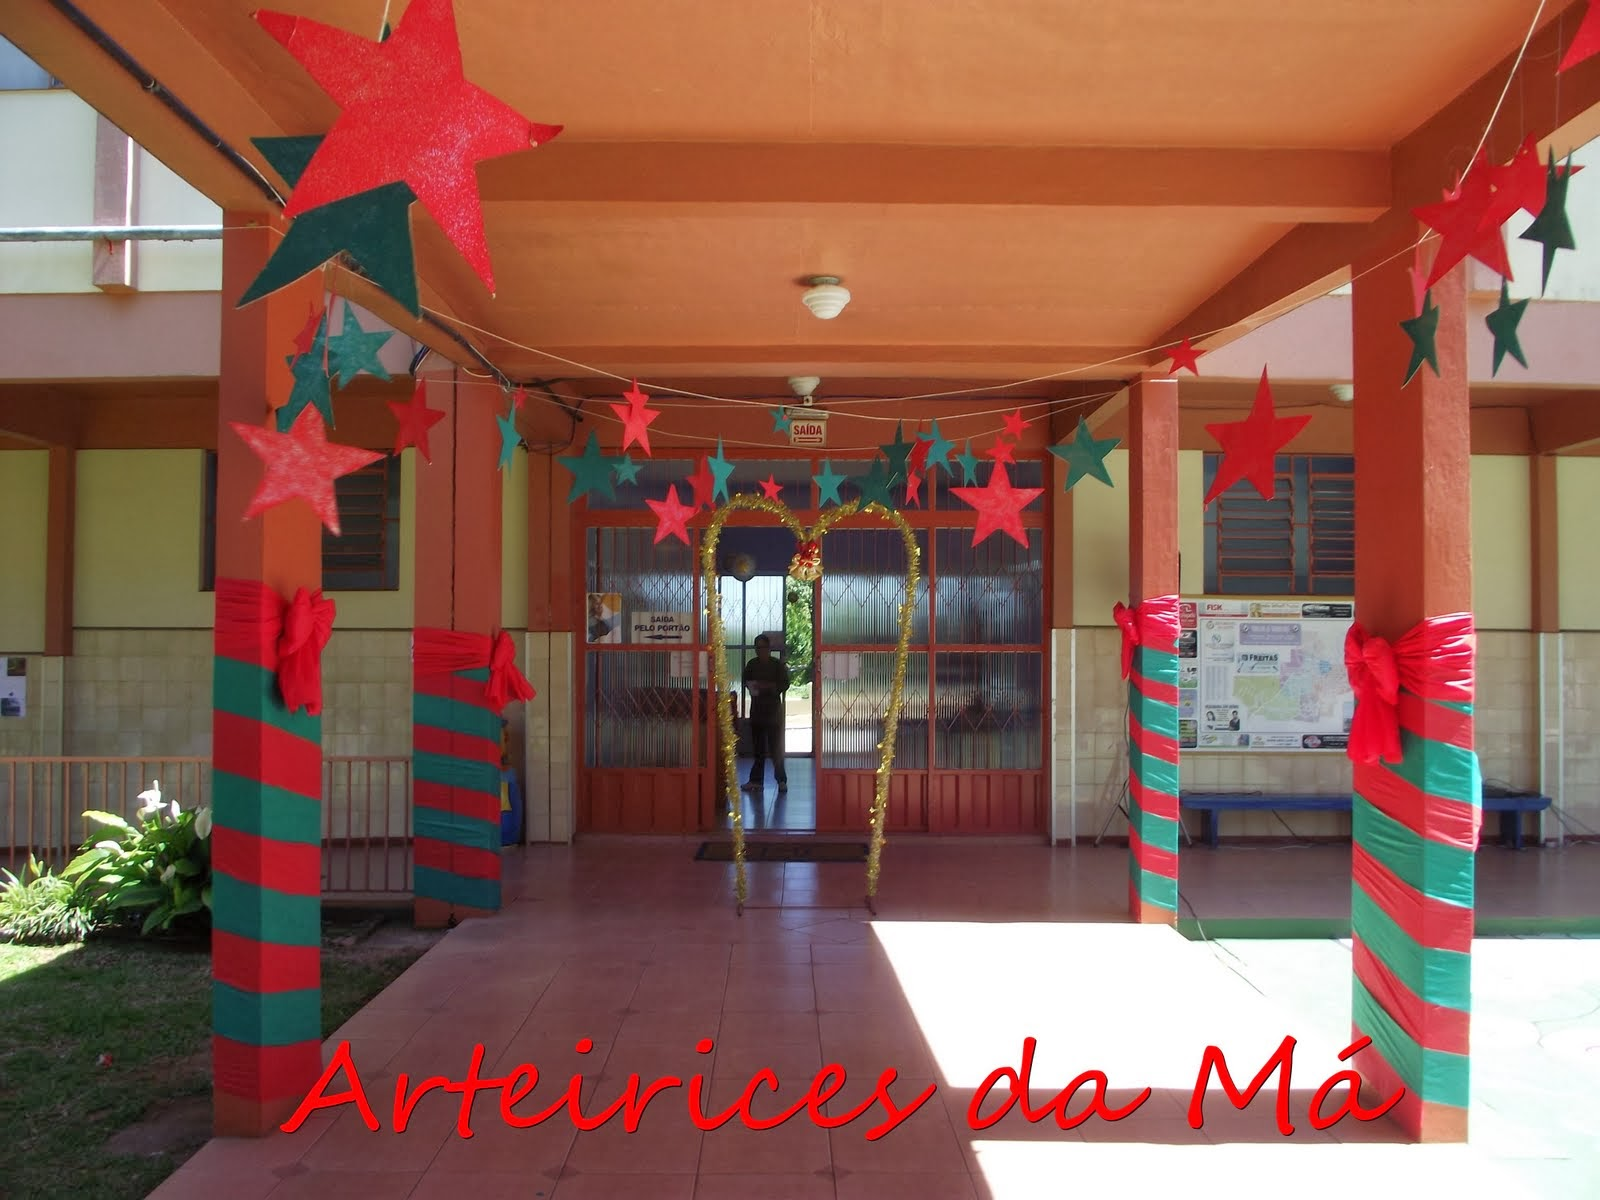 El arte de educar ideas para decorar la escuela en las for Ideas decoracion navidad colegio